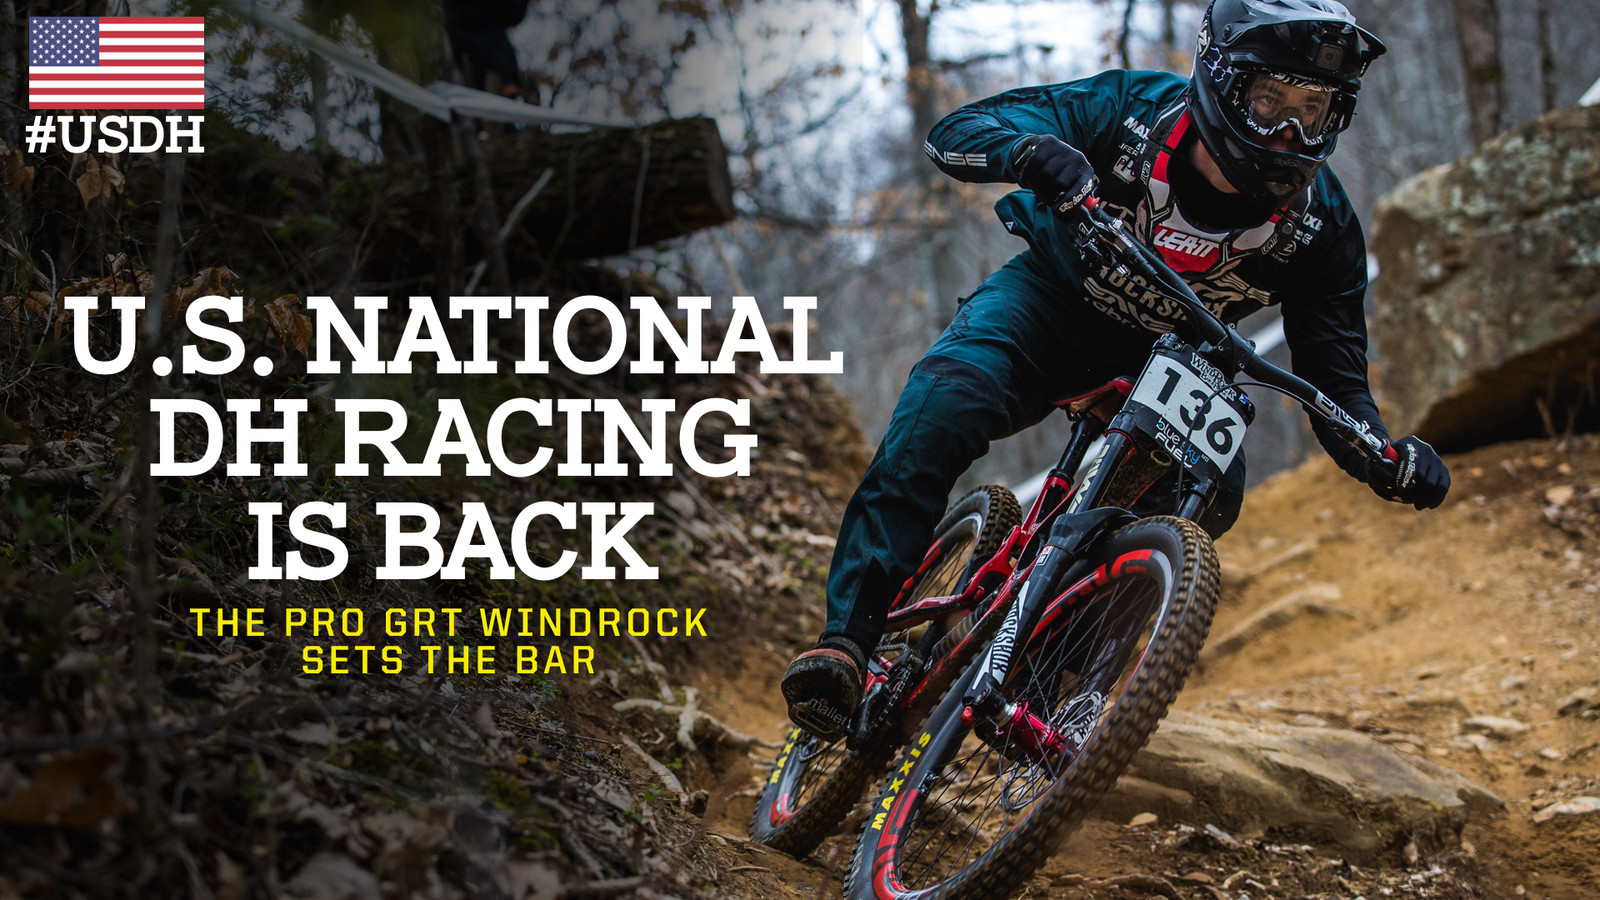 U.S. National Downhill Racing is Back